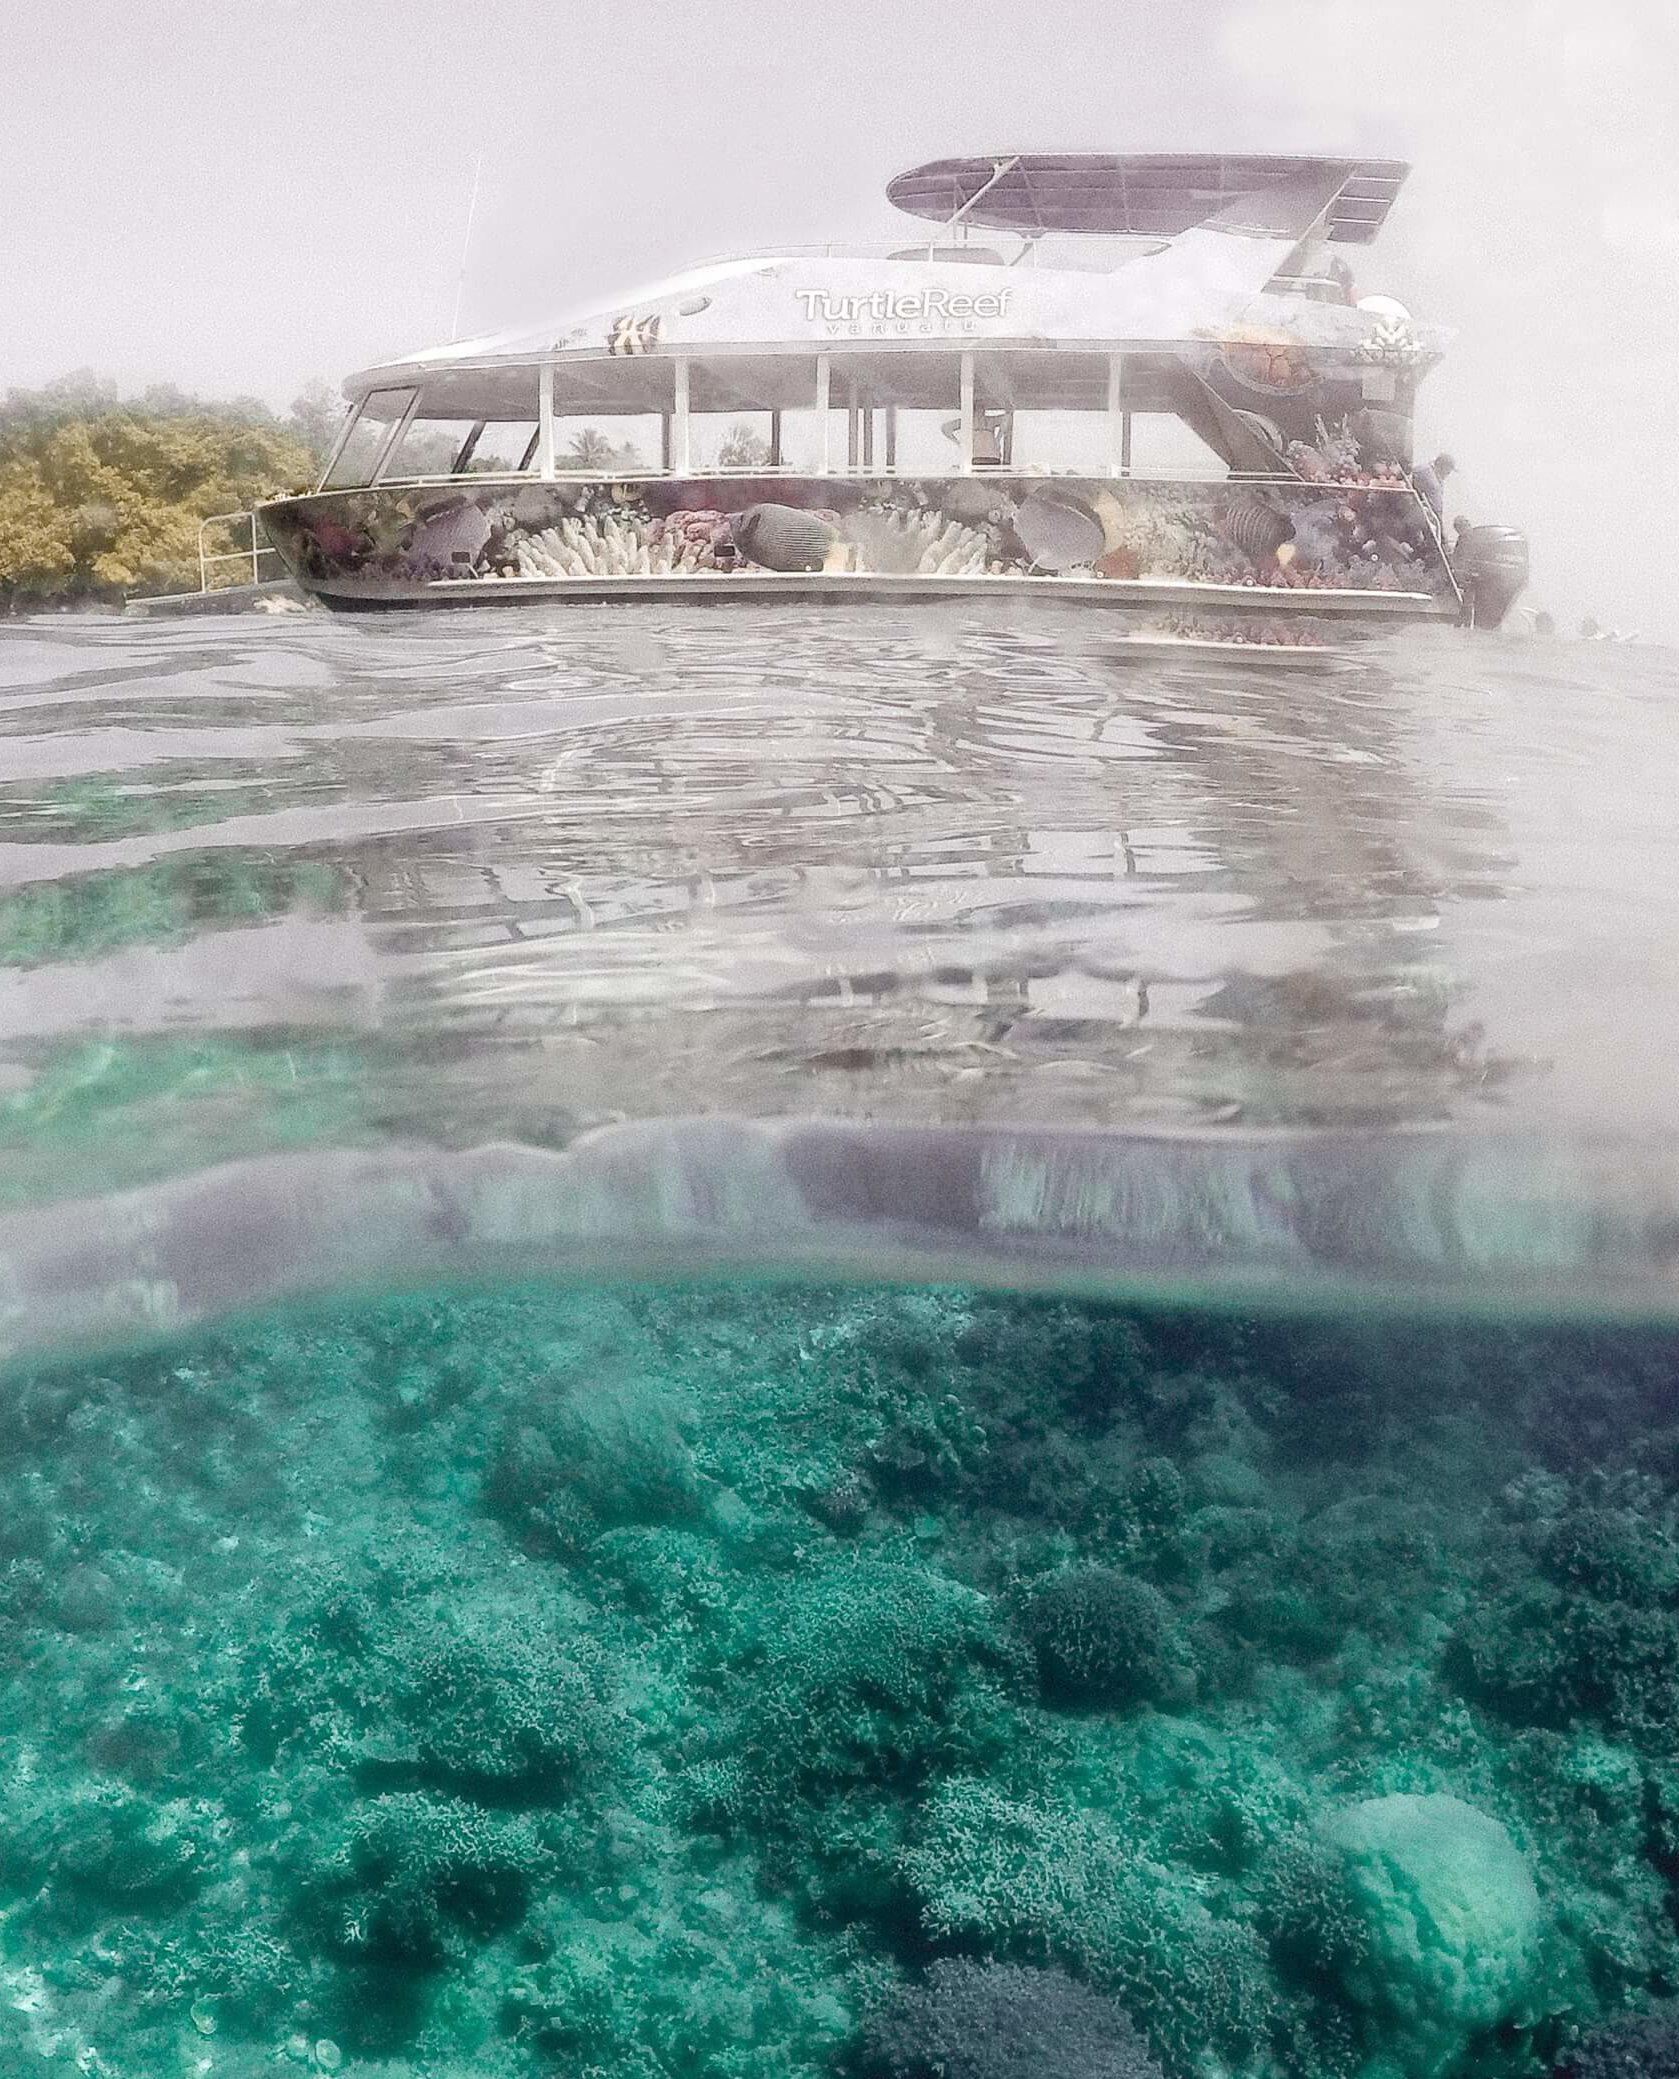 Turtle reef cruise boat sailing on the water, half photo with underwater view